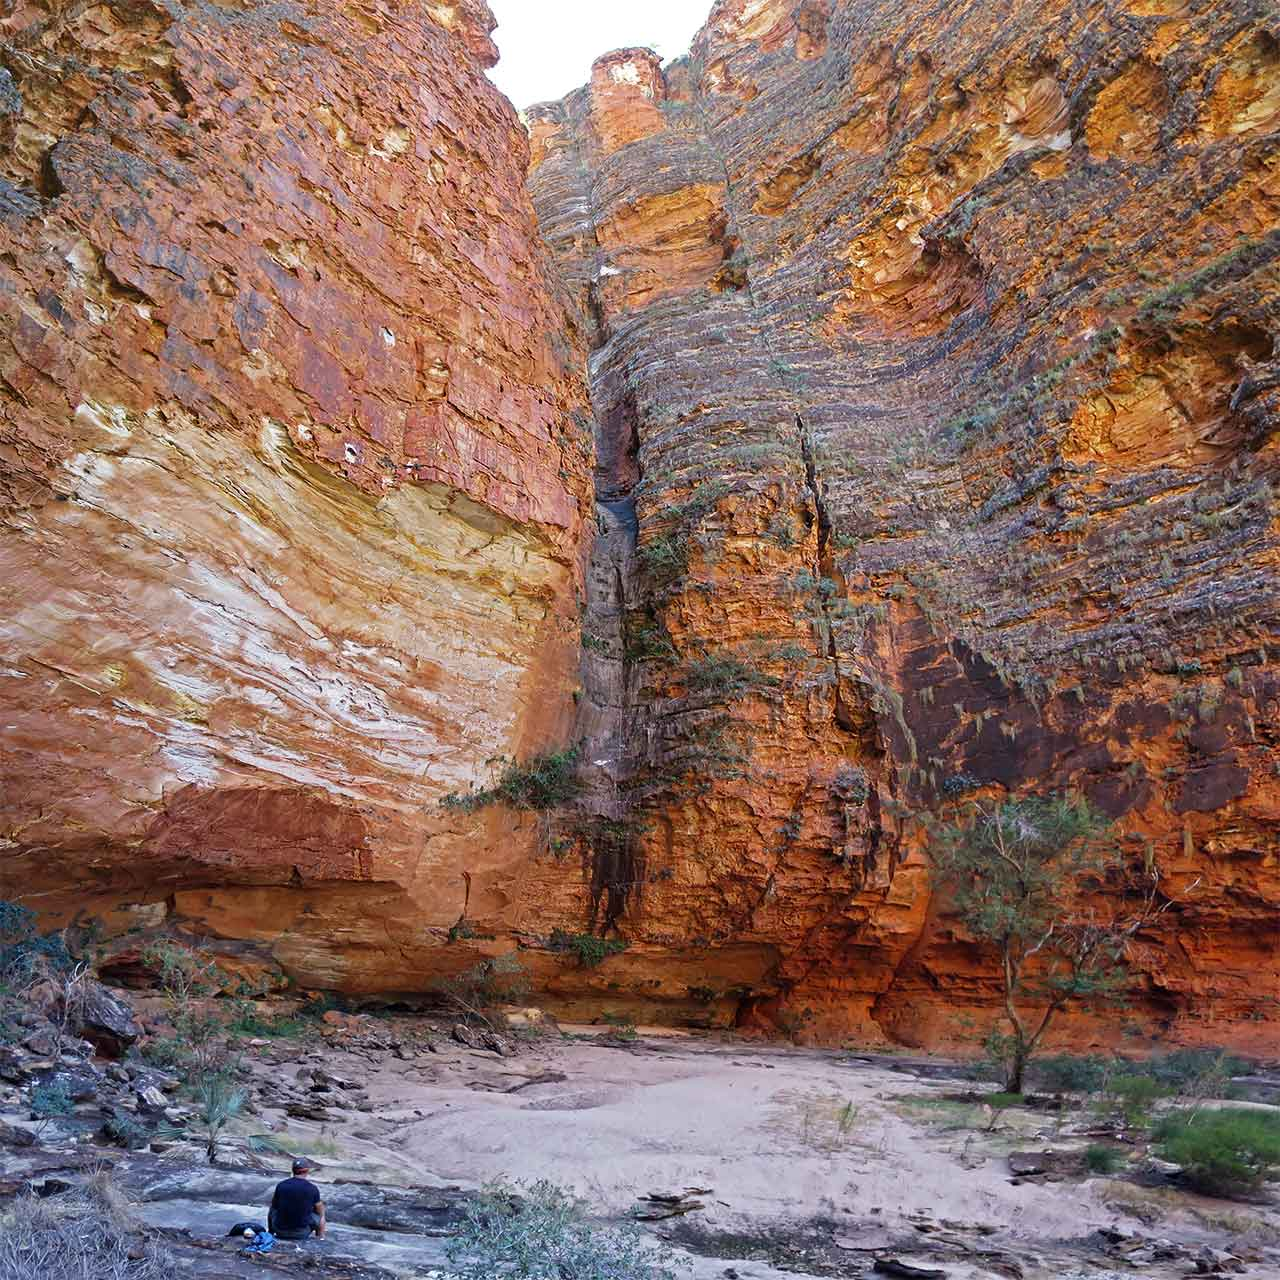 Australia Purnululu National Park Bungle Bungles Whip Snake Gorge